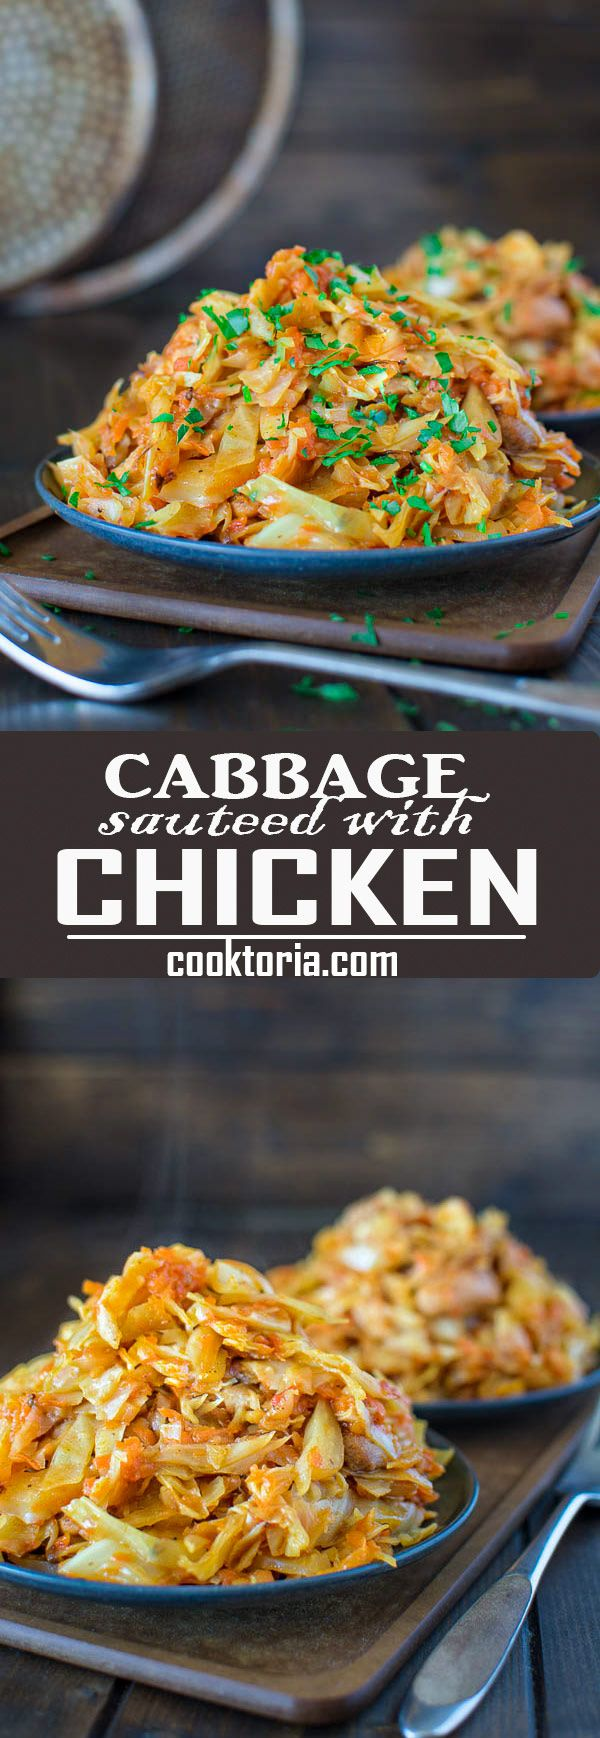 183466 best best of food blogger recipes images on pinterest cabbage sauteed with chicken forumfinder